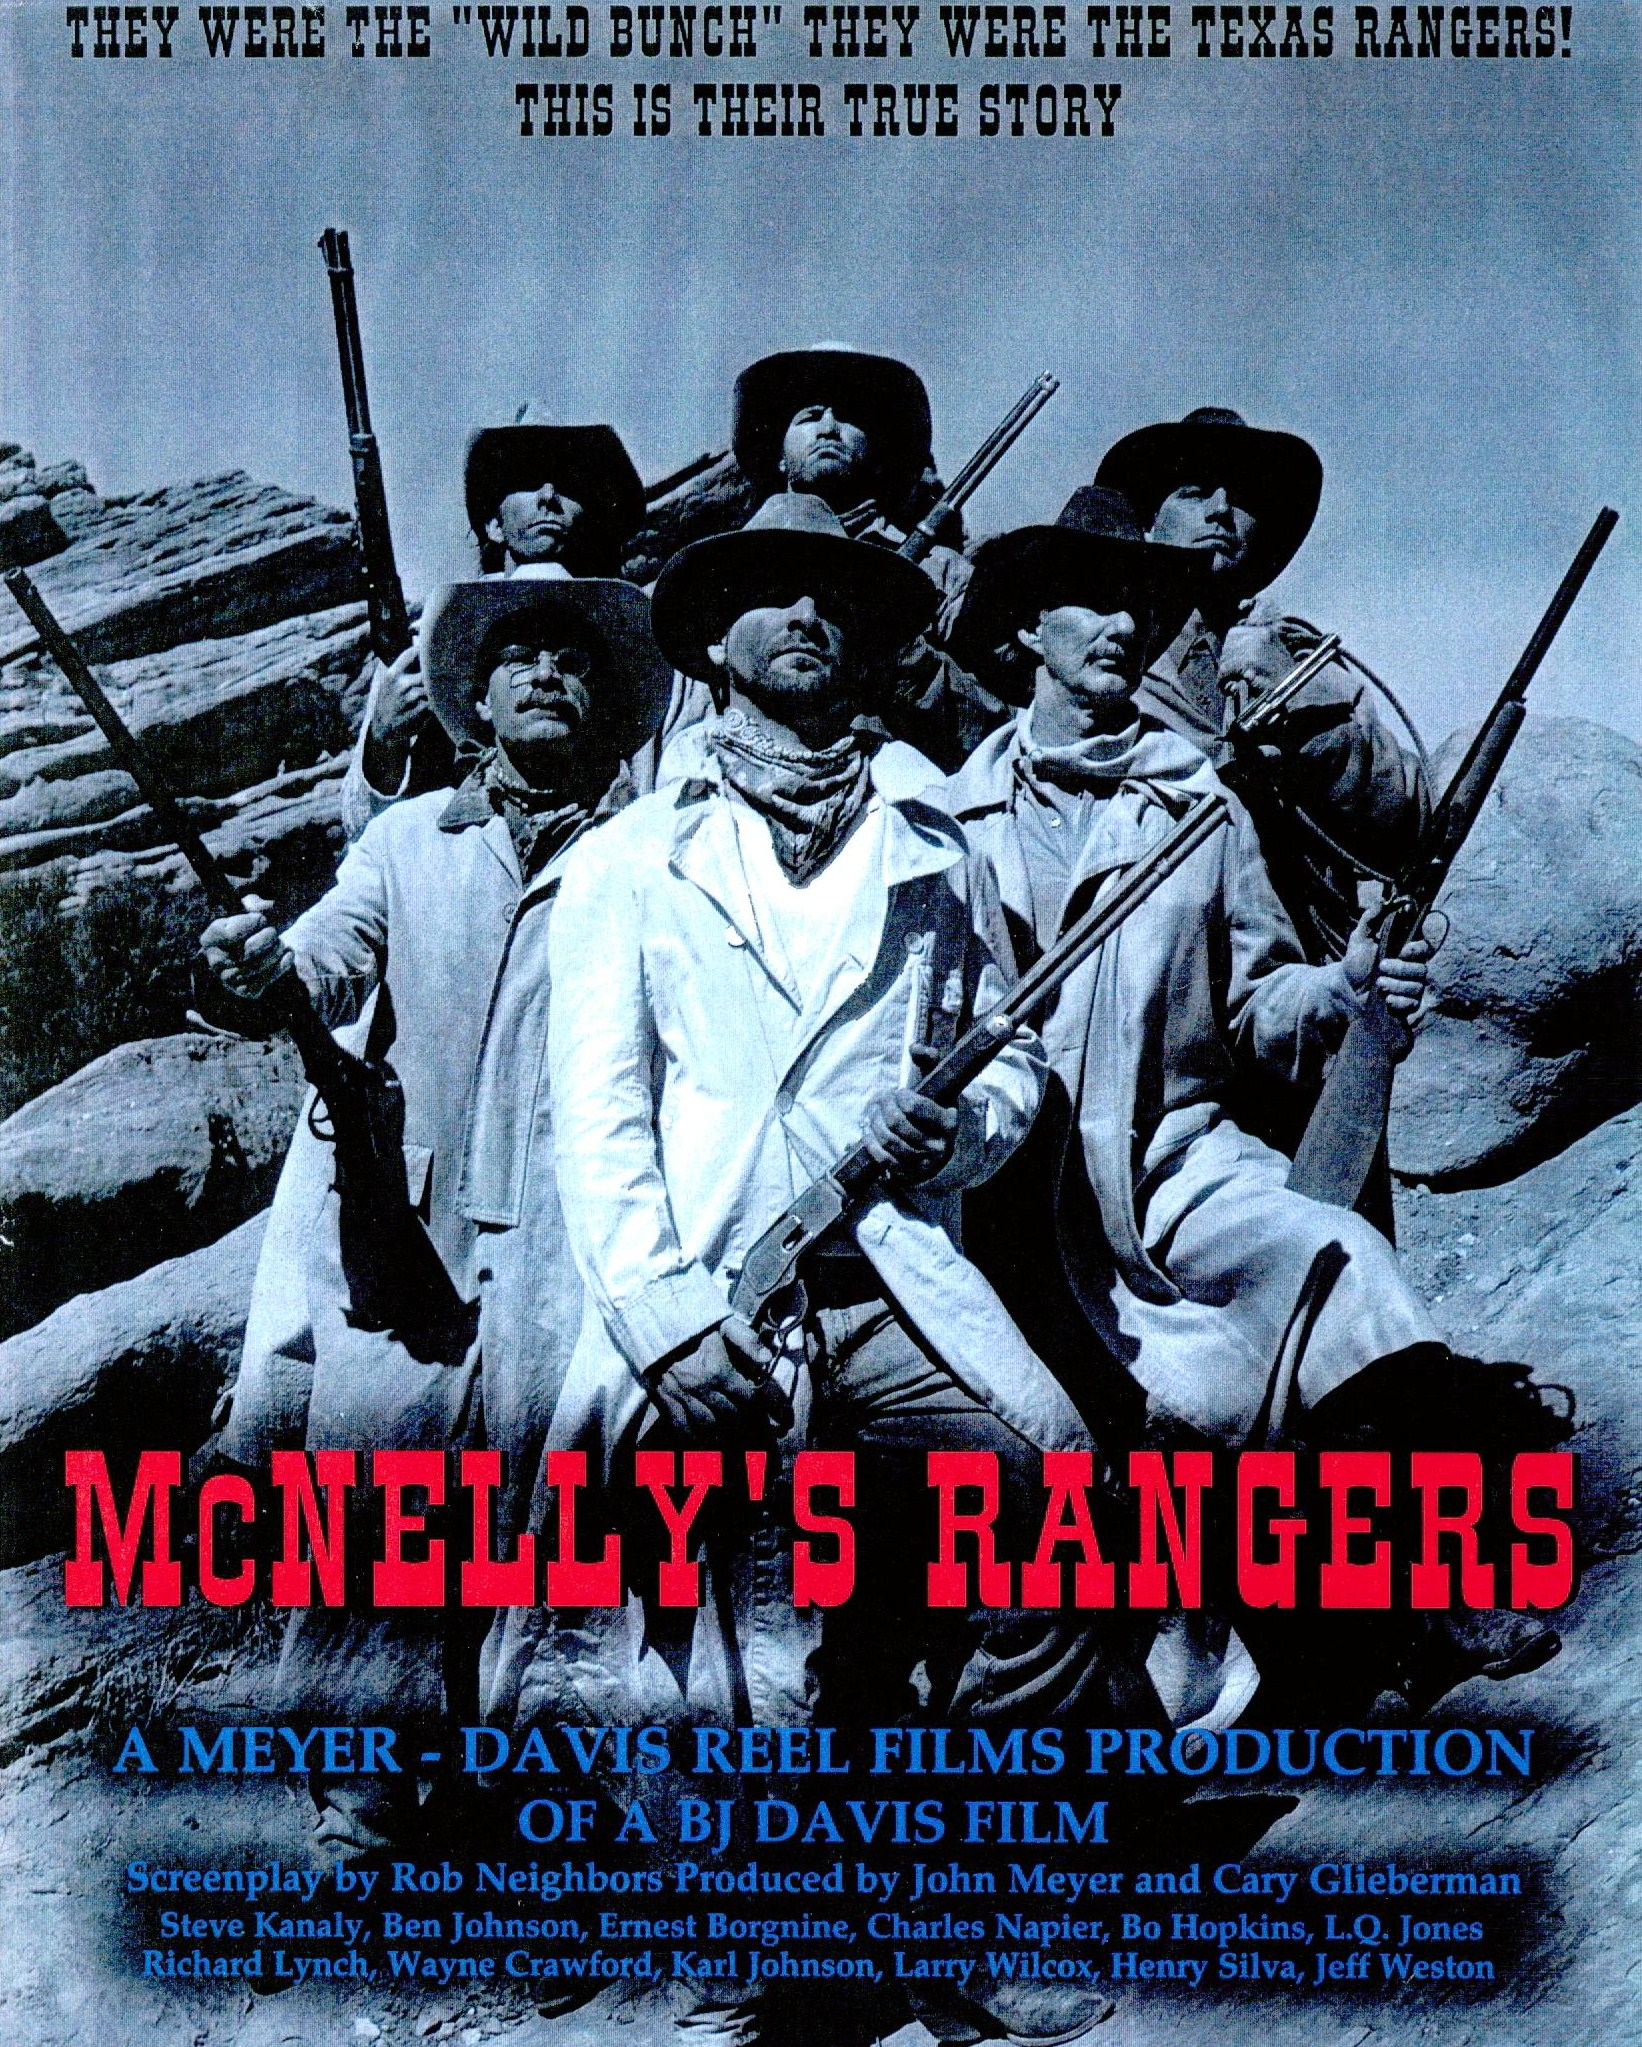 McNelly's Rangers